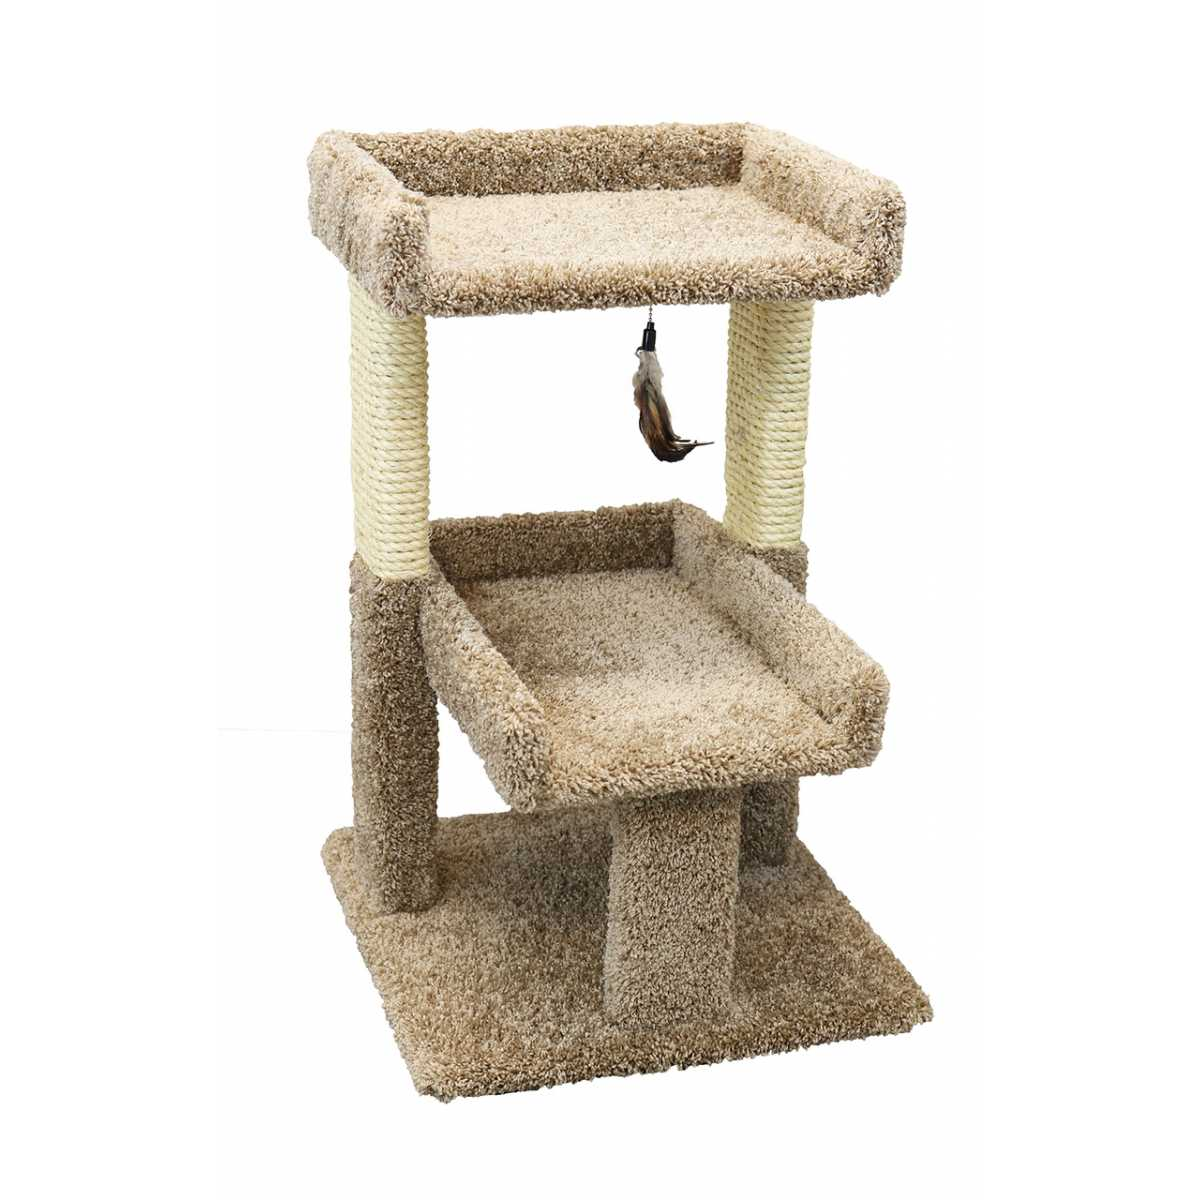 Cat S Choice 32 Inch Double Level Cat Tree 110093 Catsplay Superstore